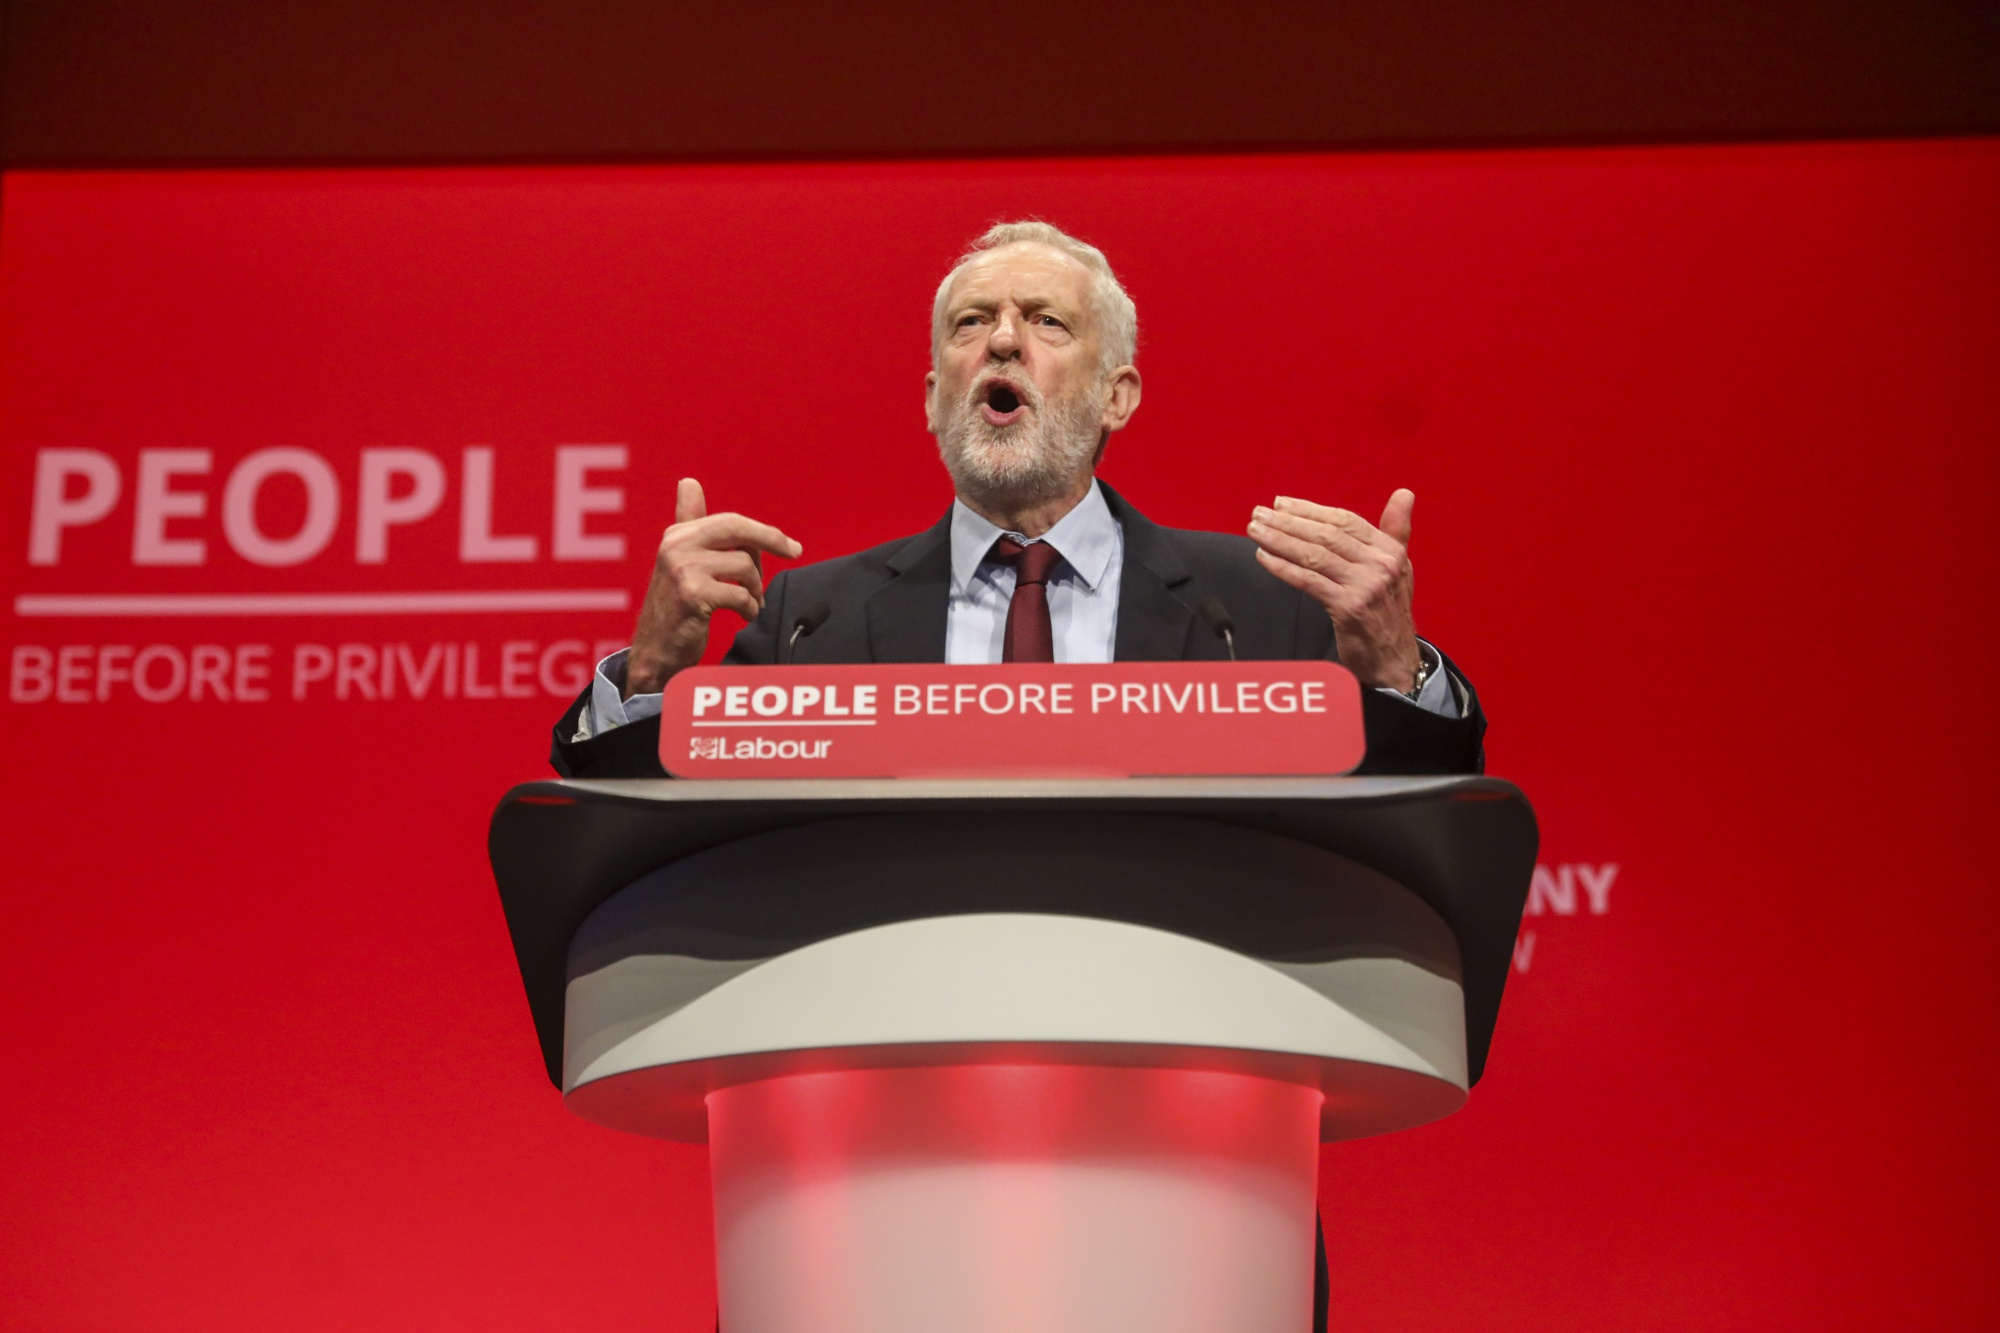 Jeremy Corbyn Has Property Funds Plotting Their Own Brexits